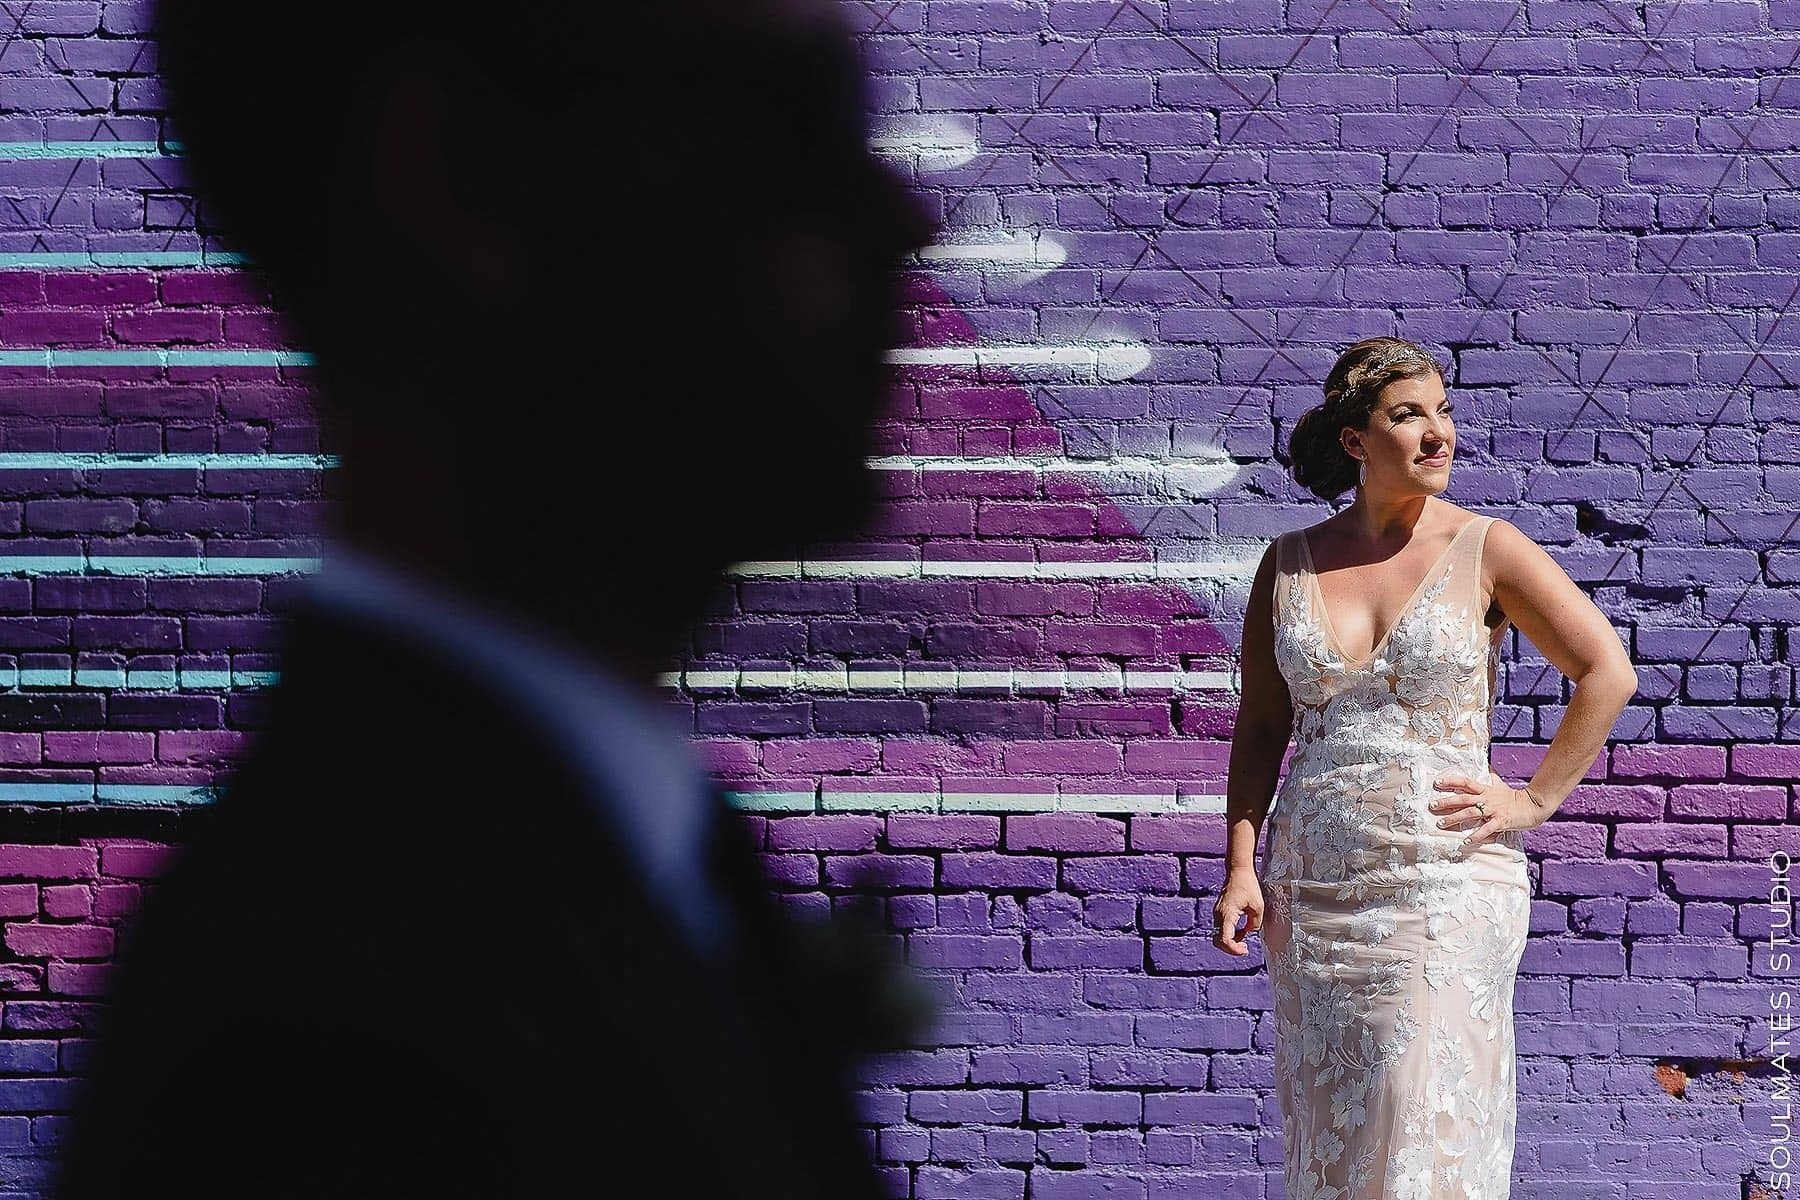 Artistic Bride and Groom Portrait at Jersey City Graffiti Wall